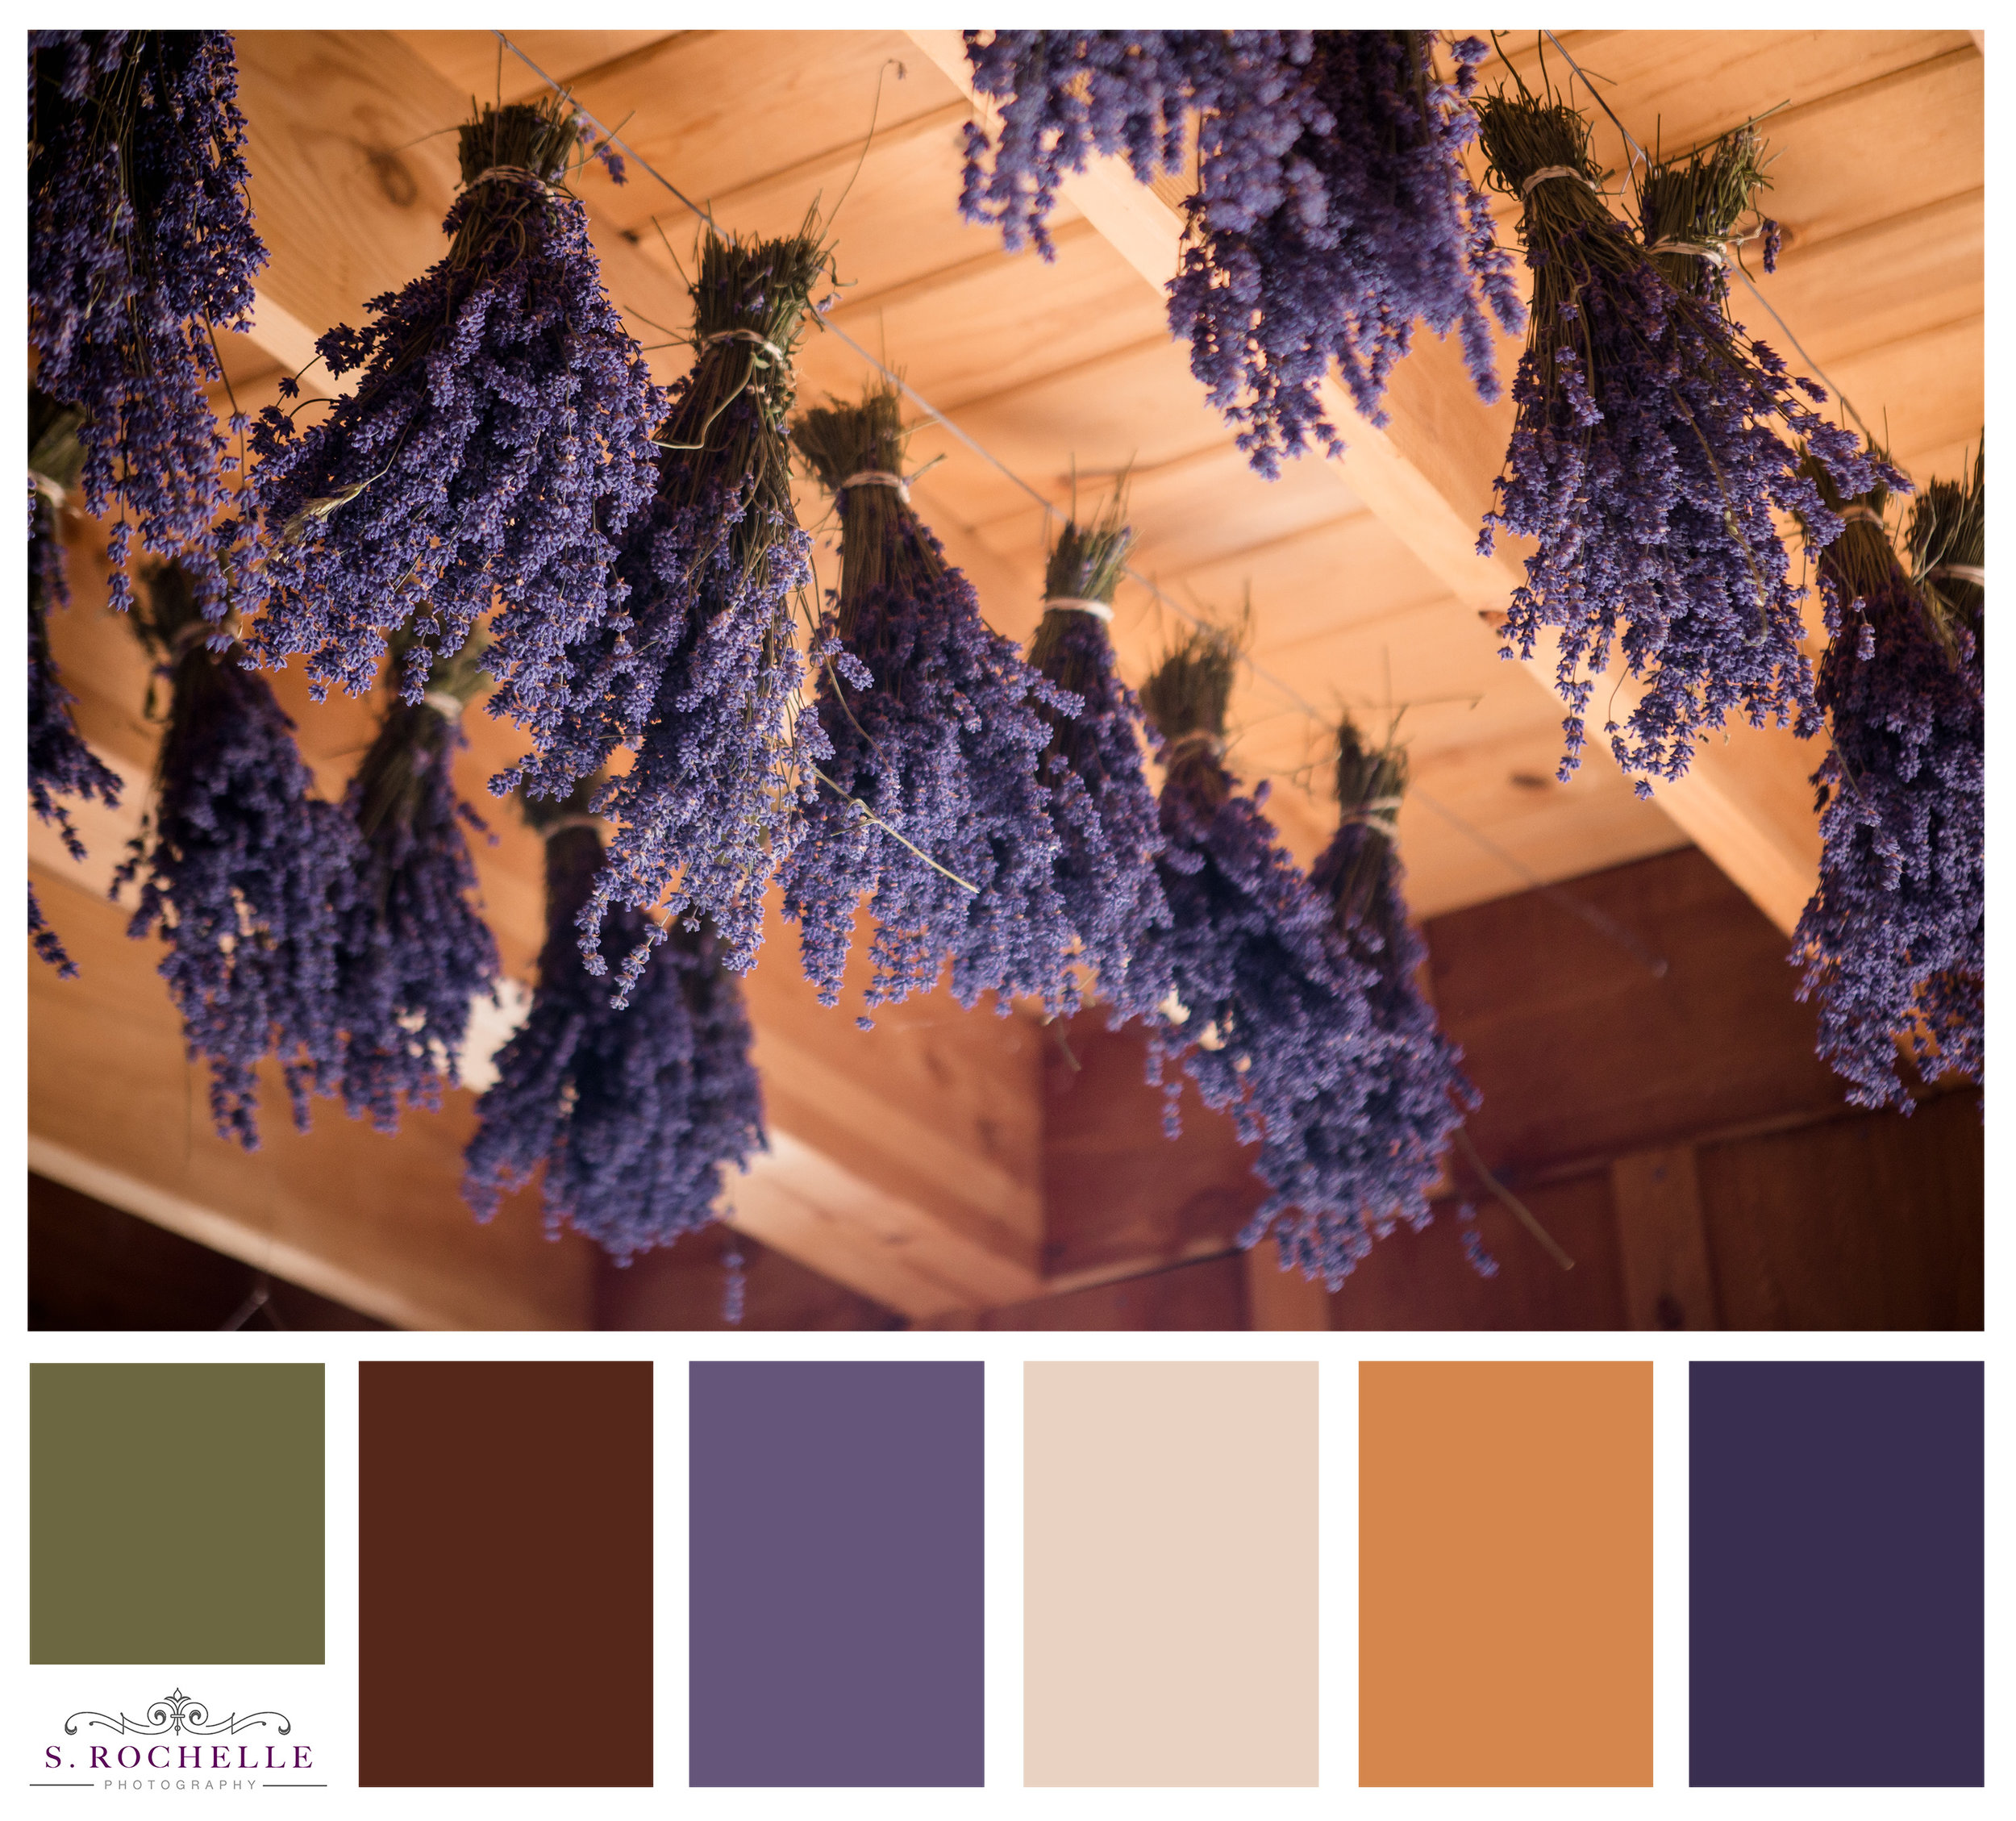 Lavender_Drying_S_Rochelle_Photography_20170715_IMG_5435_ColorPalatte.jpg